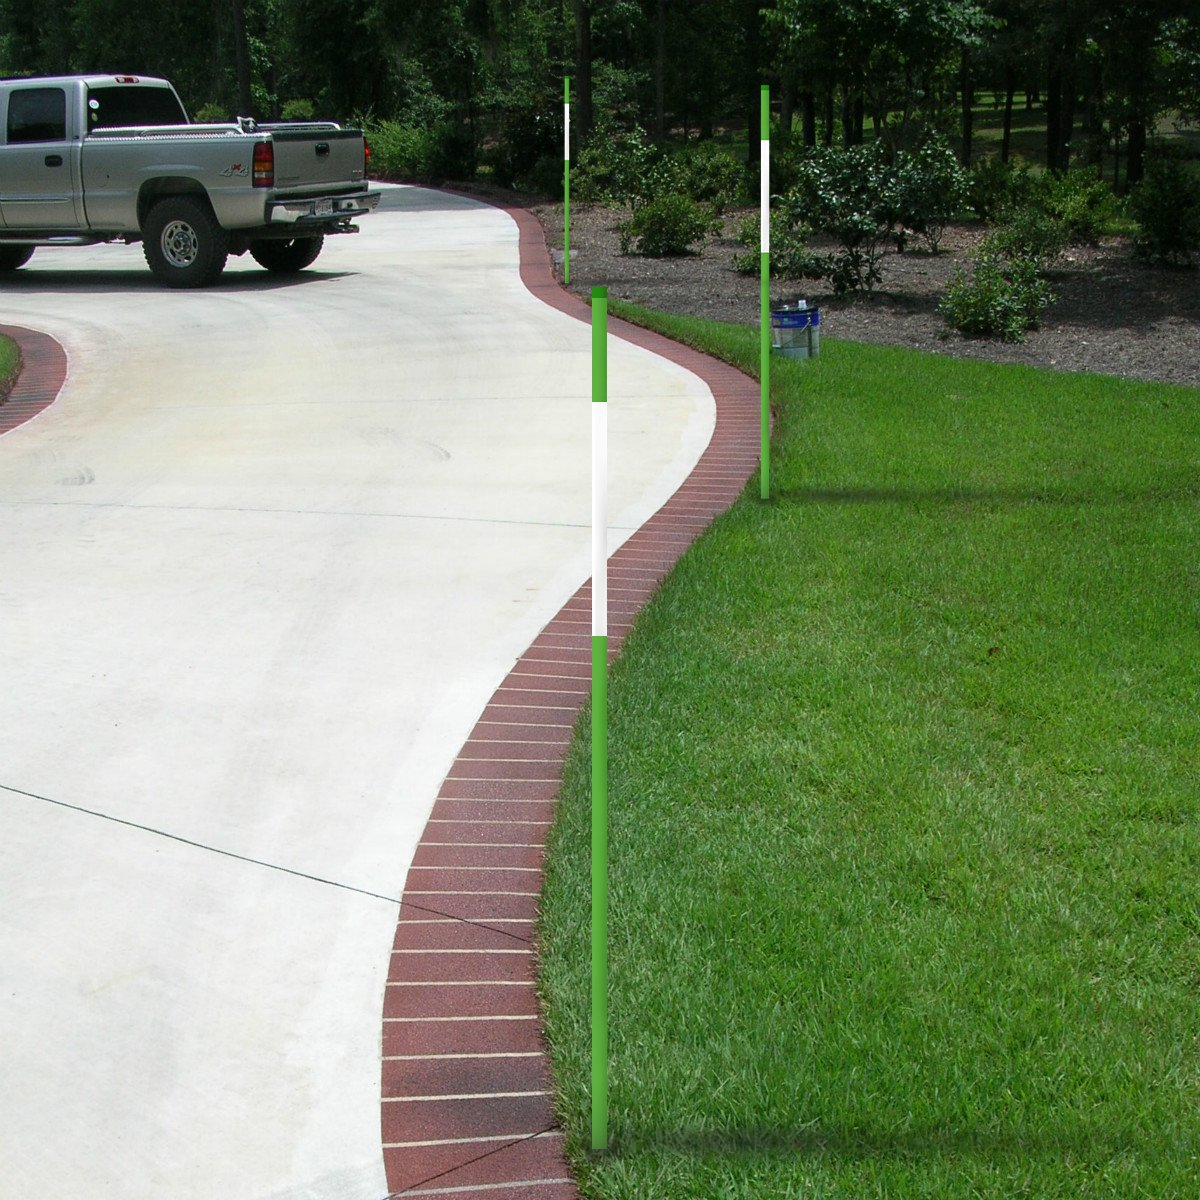 Fibermarker 60Inch Reflective Driveway Markers 5/16Inch Green Solid Driveway Poles for Easy Visibility at Night (100) by FiberMarker (Image #2)